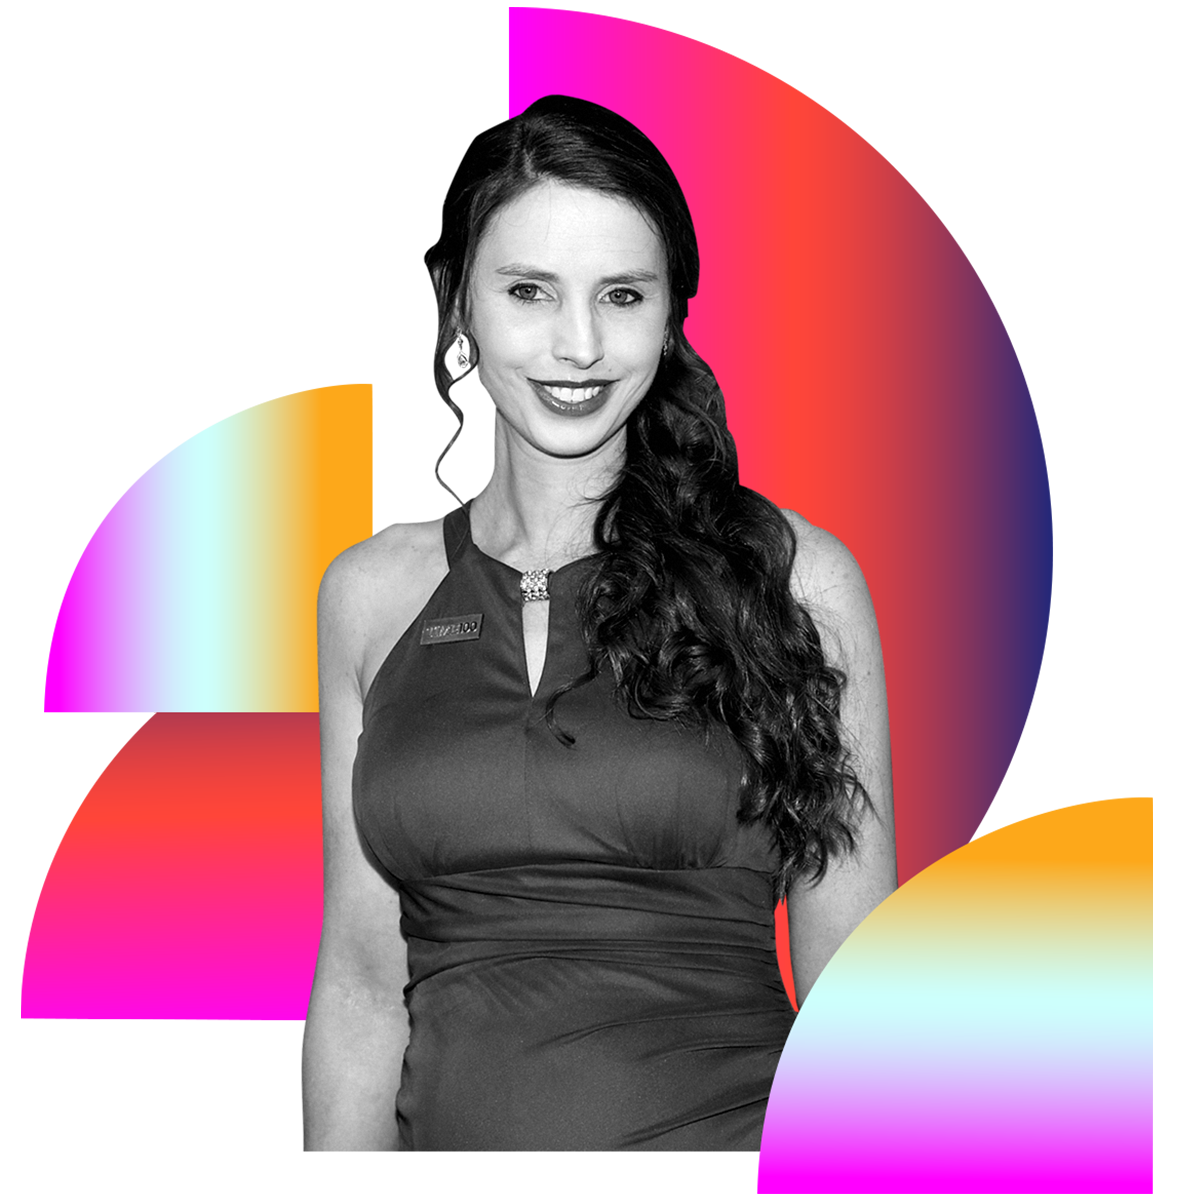 Photo illustration of Rachael Denhollander in black and white surrounded by colored gradients